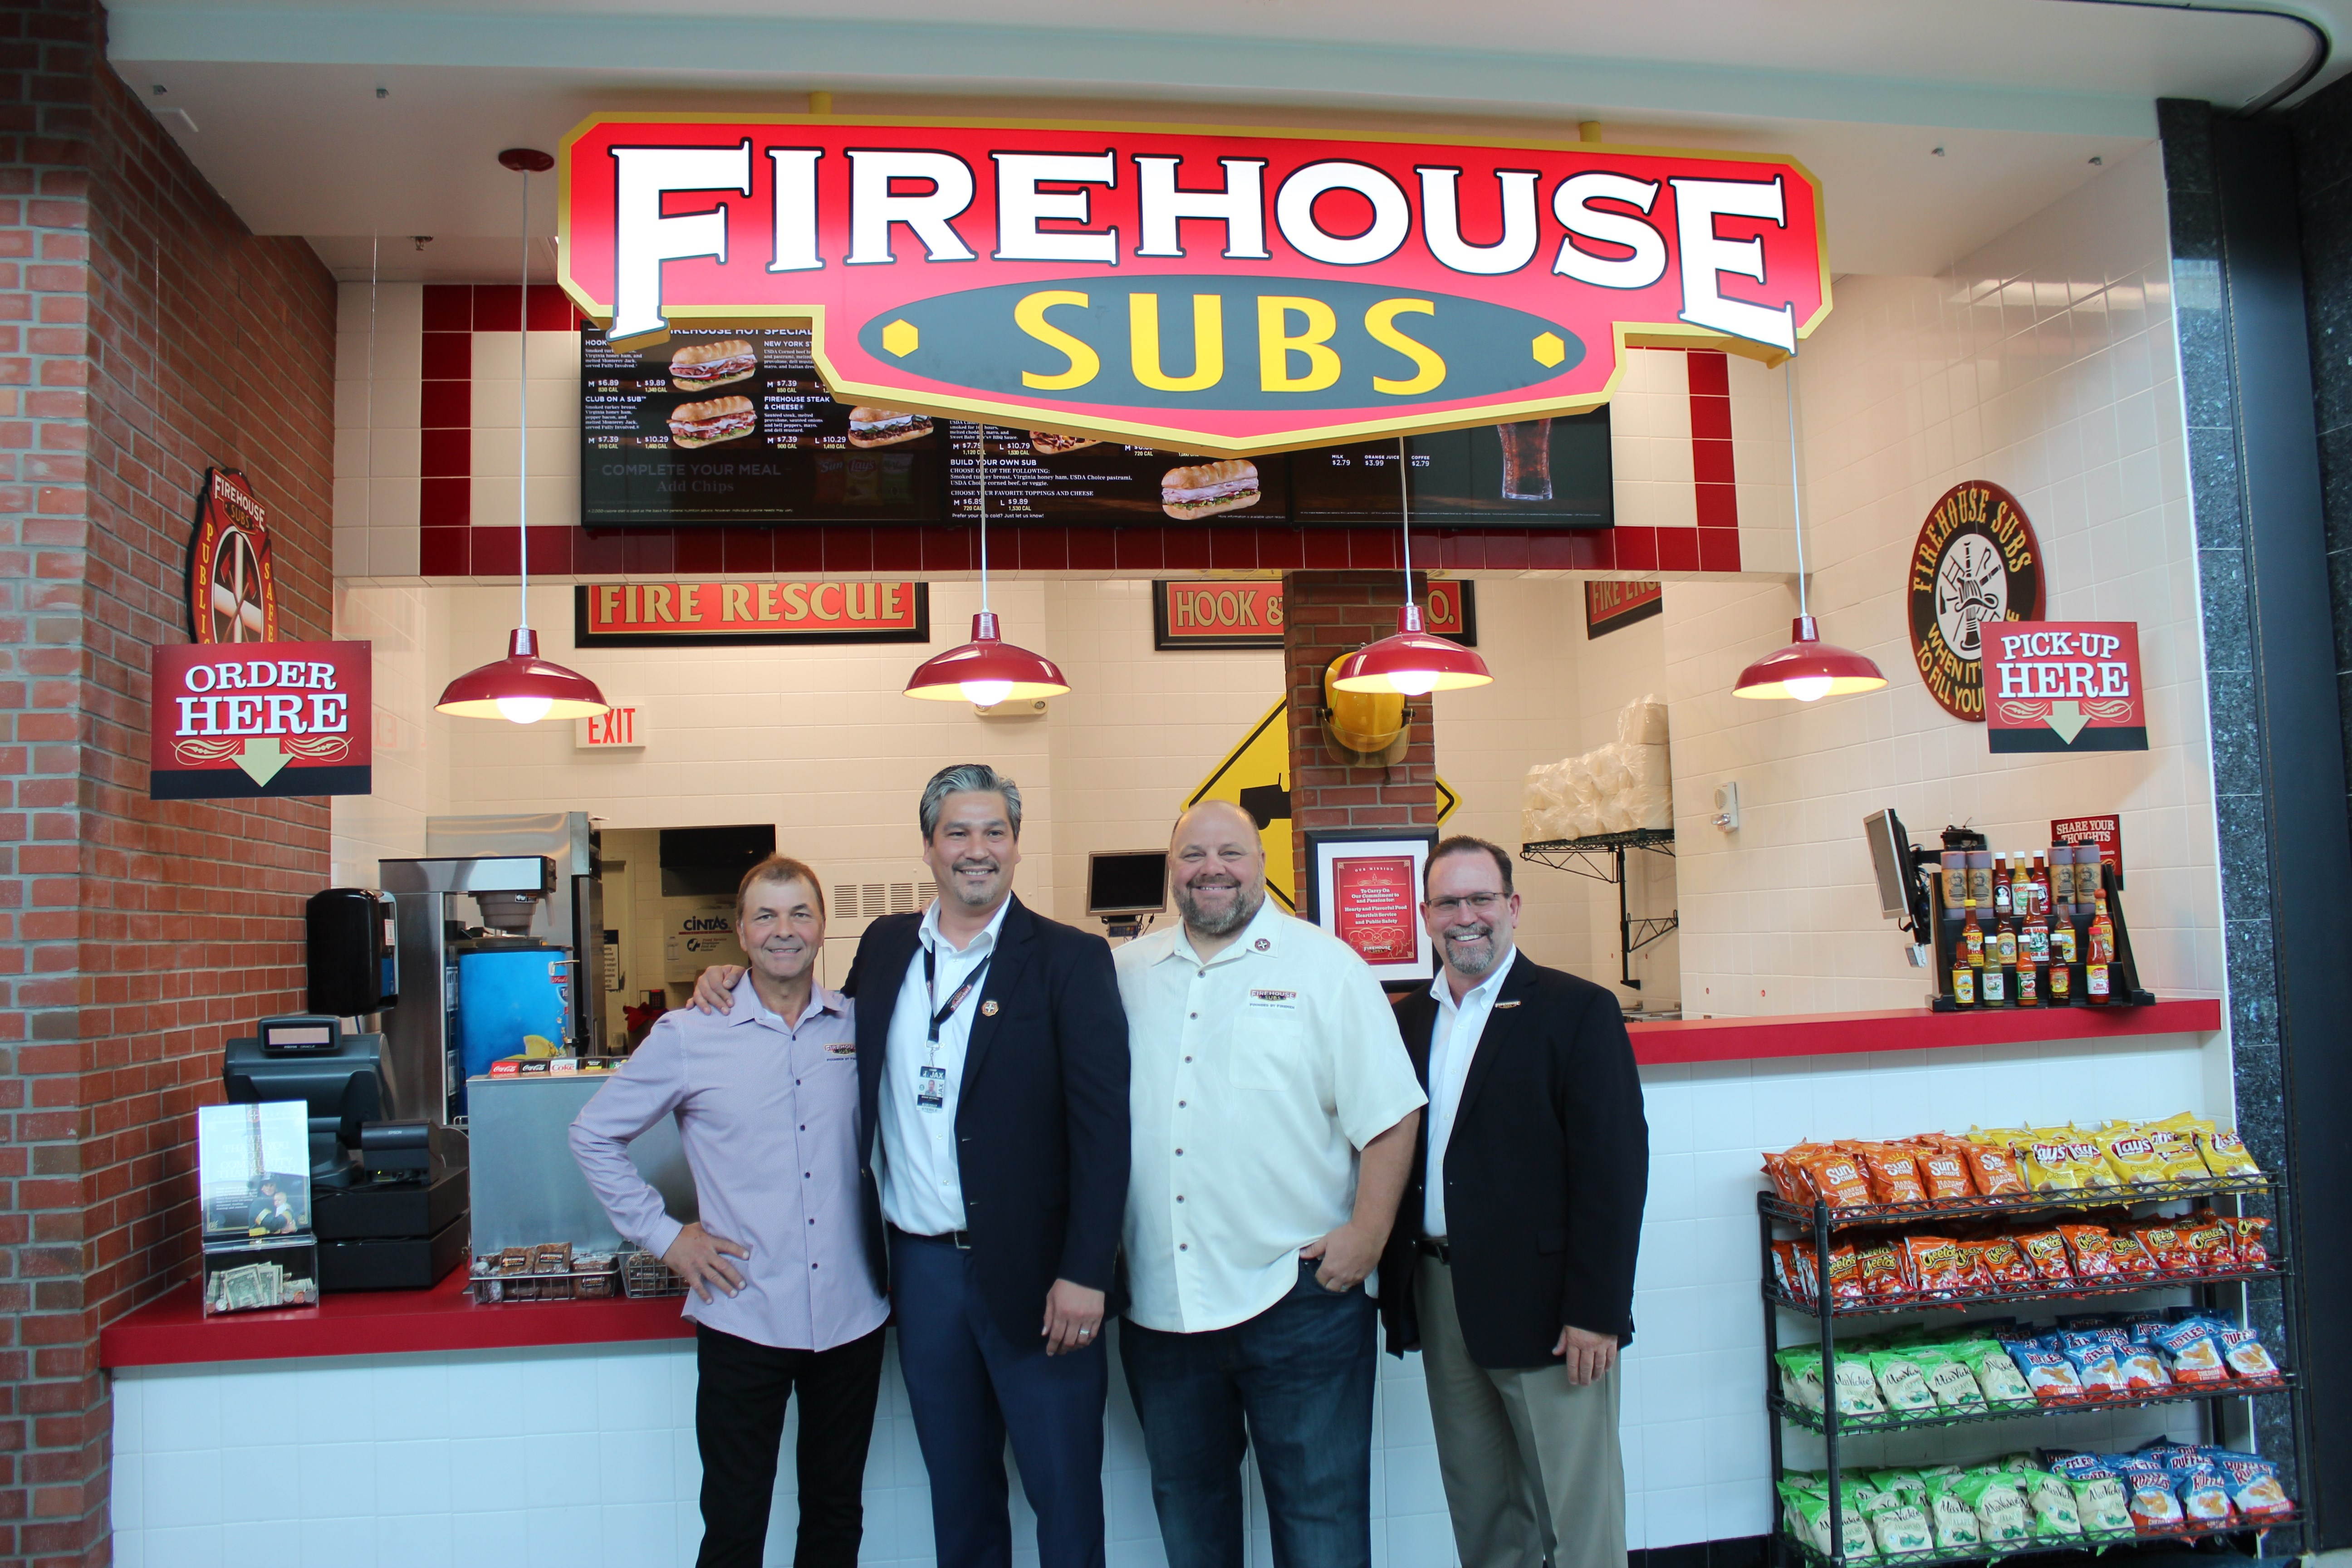 FIREHOUSE SUBS® DEBUTS NEW AIRPORT CONCEPT WITH FIRST FRANCHISE LOCATION INSIDE JACKSONVILLE INTERNATIONAL AIRPORT